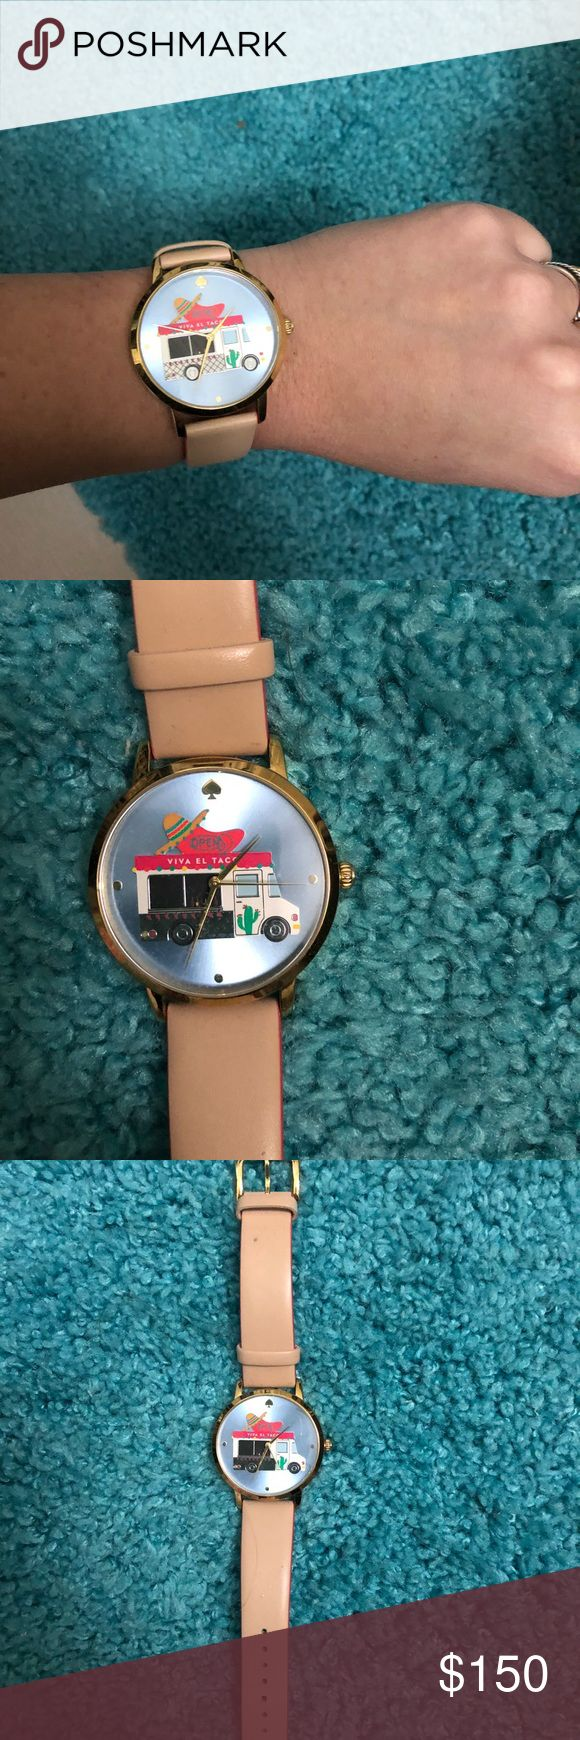 Kate spade Taco Watch! In excellent condition, only worn once! $100% authentic bought at the Nordstrom semi annual sale :) taking offers! kate spade Accessories Watches